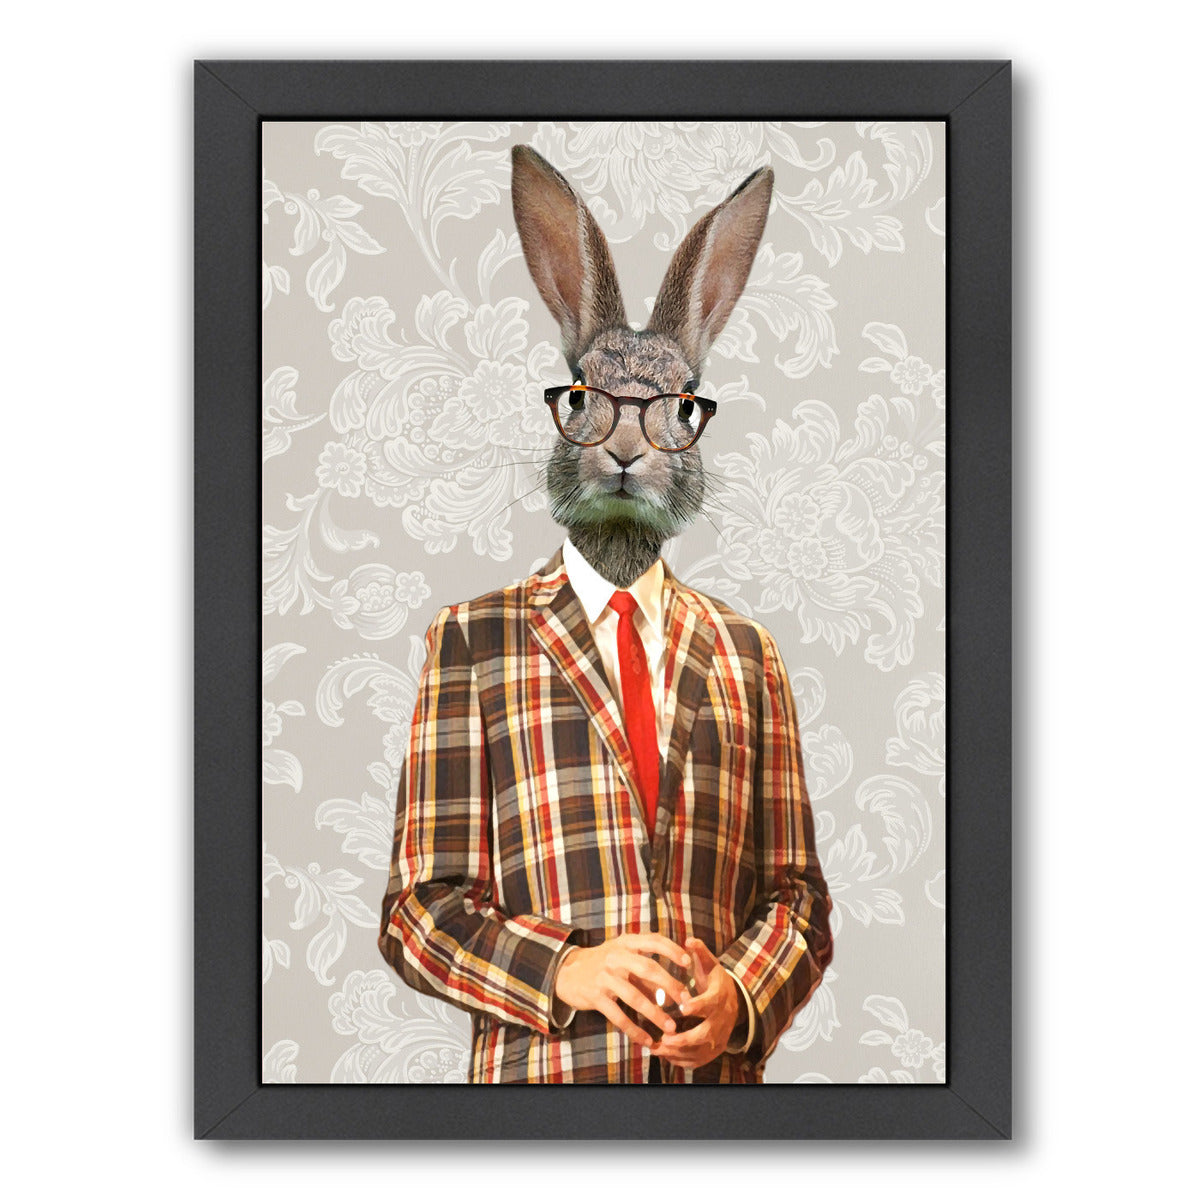 Vintage Rabbit Man By Coco De Paris - Black Framed Print - Wall Art - Americanflat